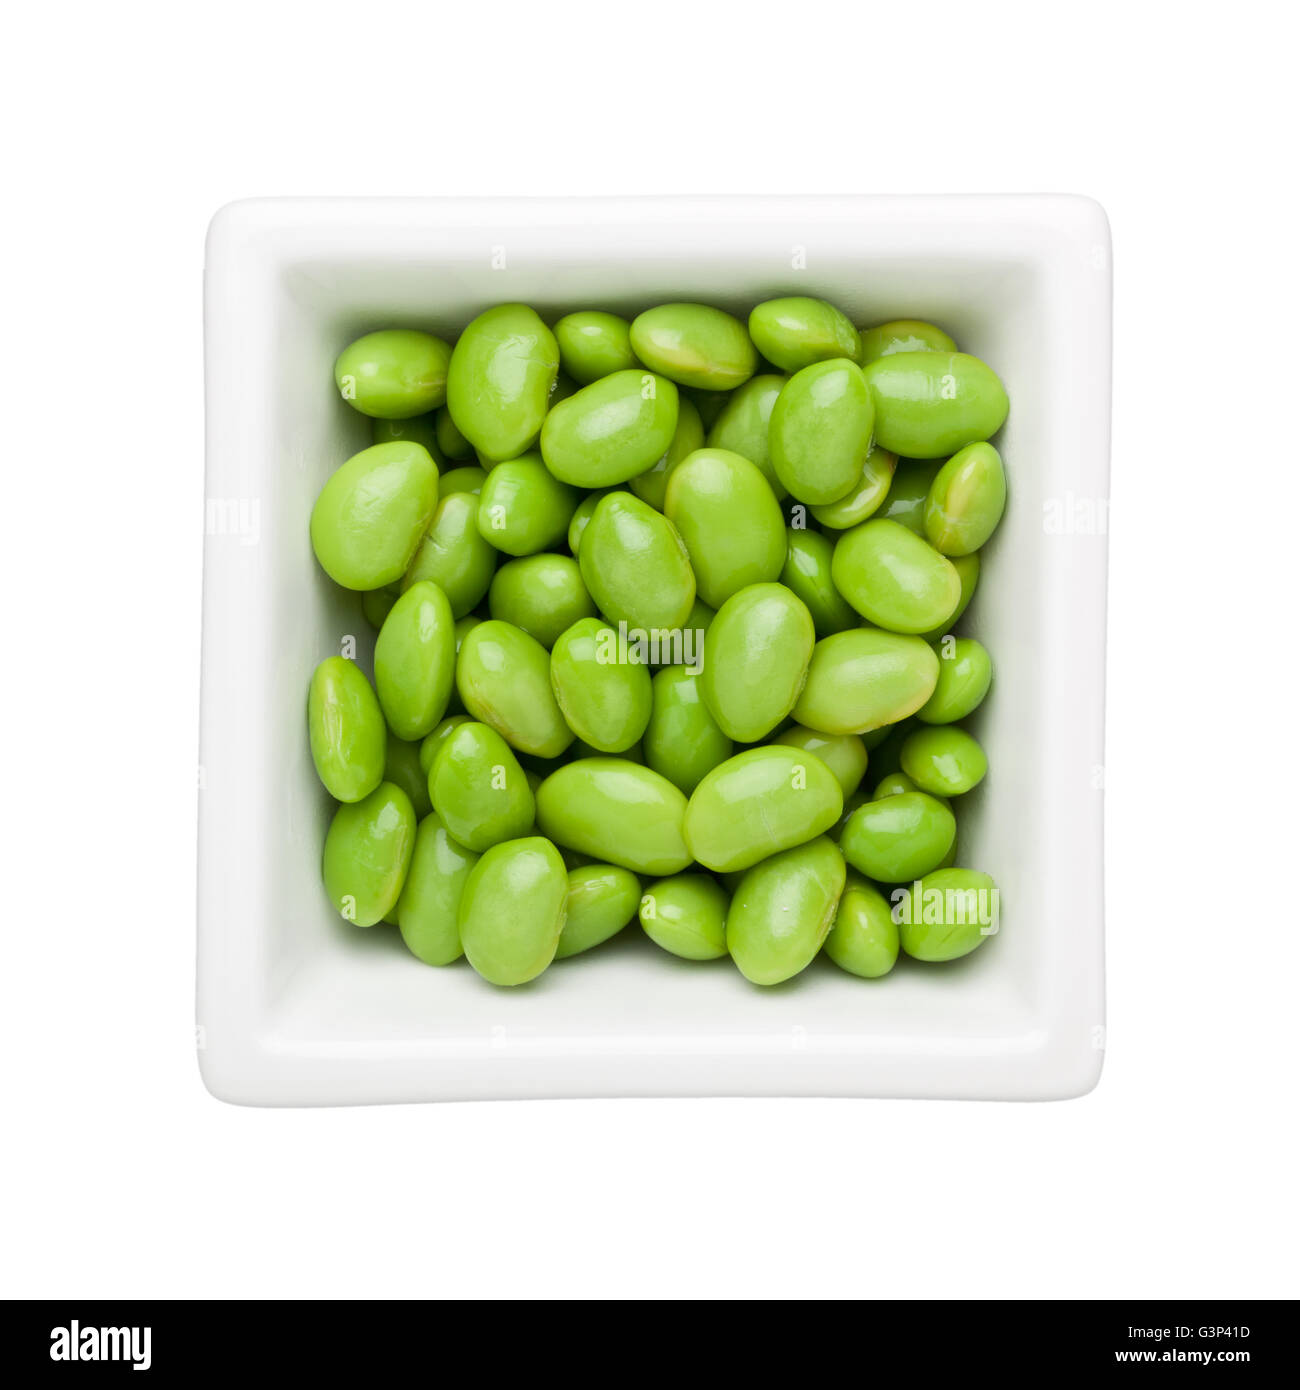 Green soy beans in a square bowl isolated on white background - Stock Image